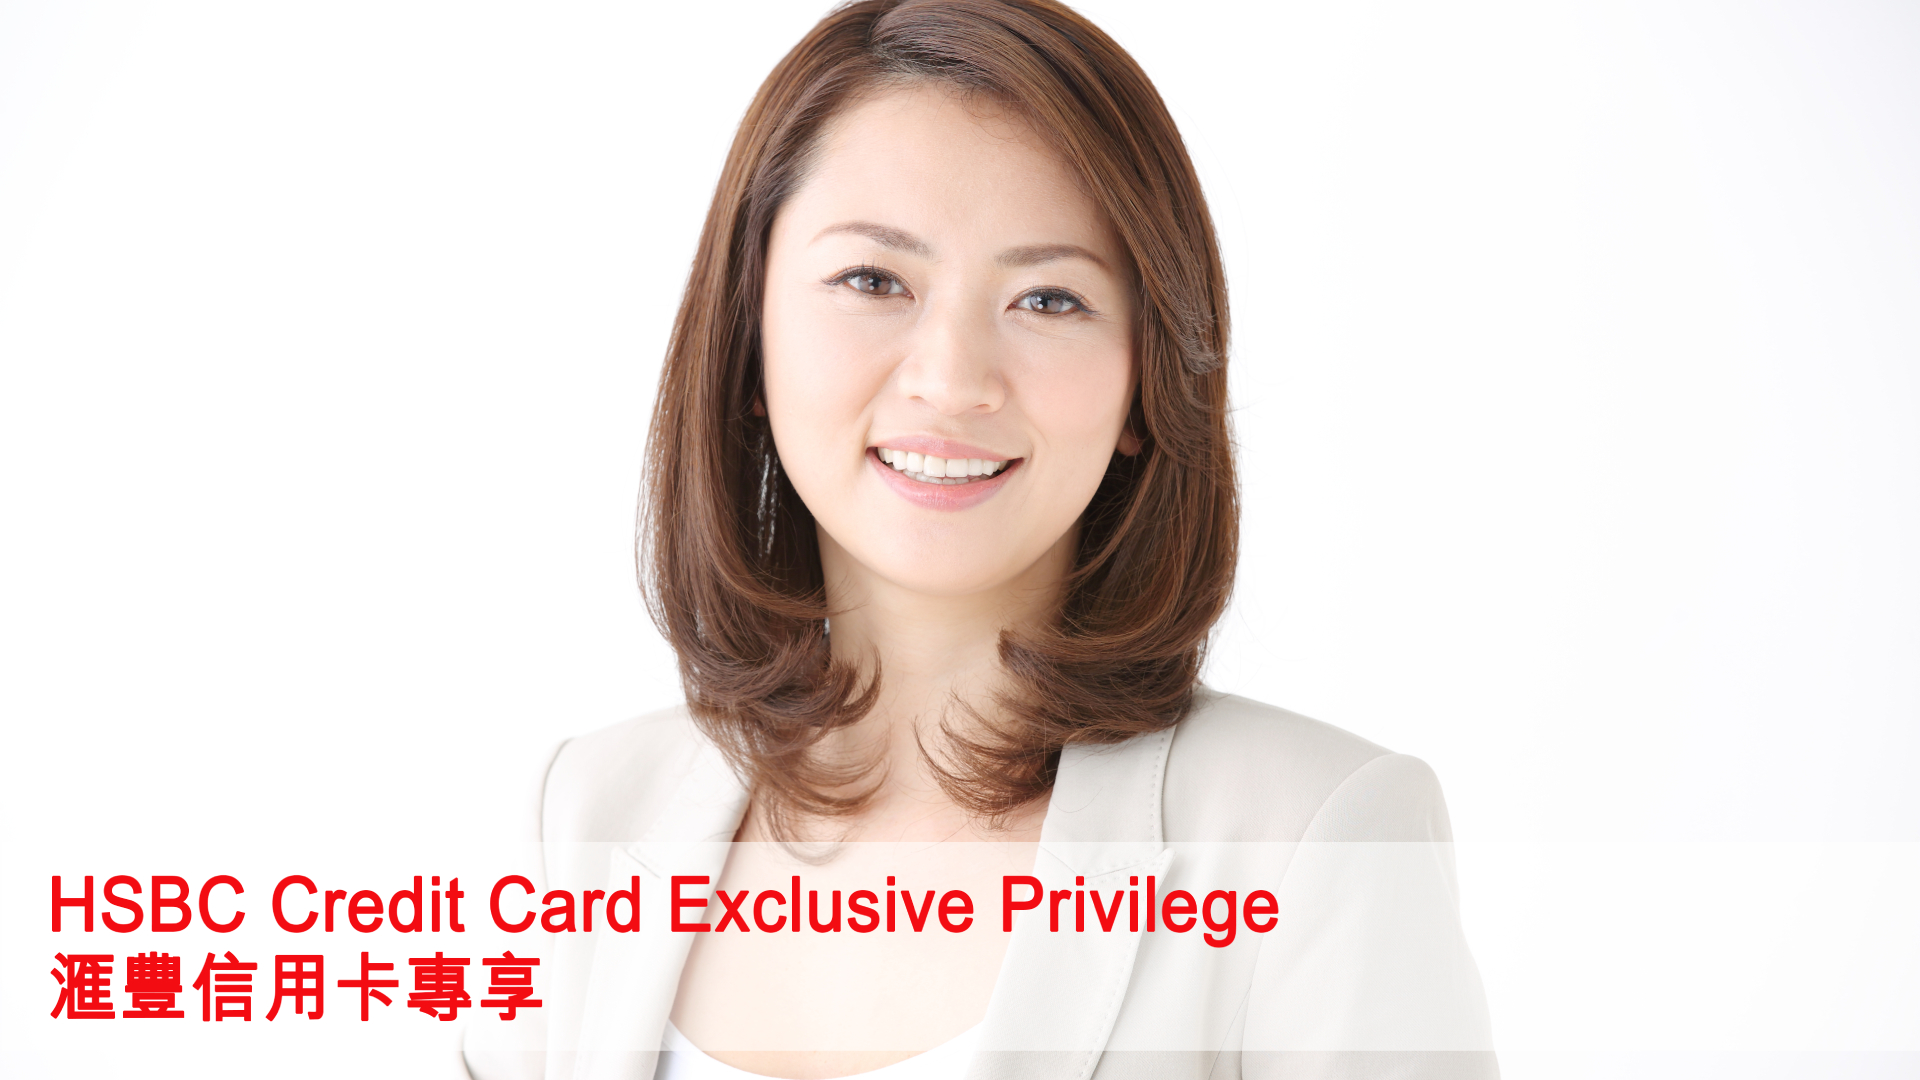 HSBC Credit Card Exclusive - Women 40+ Physical Check-up with Extra Privilege